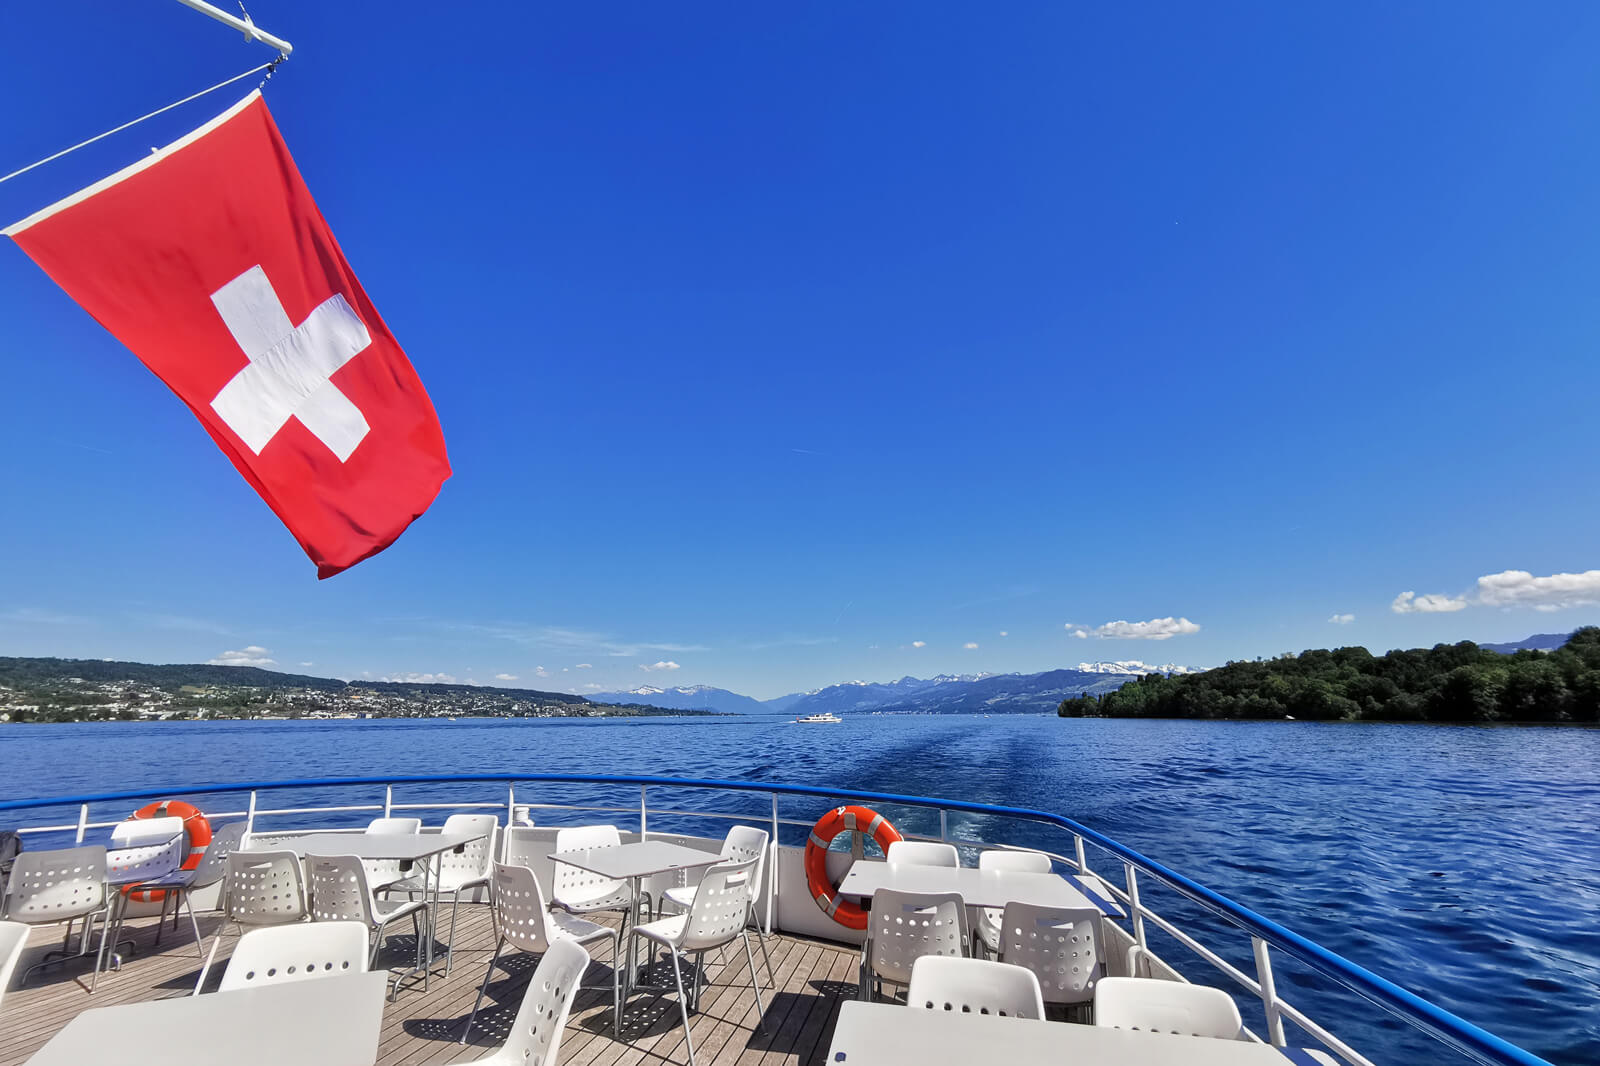 Lake Zurich Boat with Swiss Flag